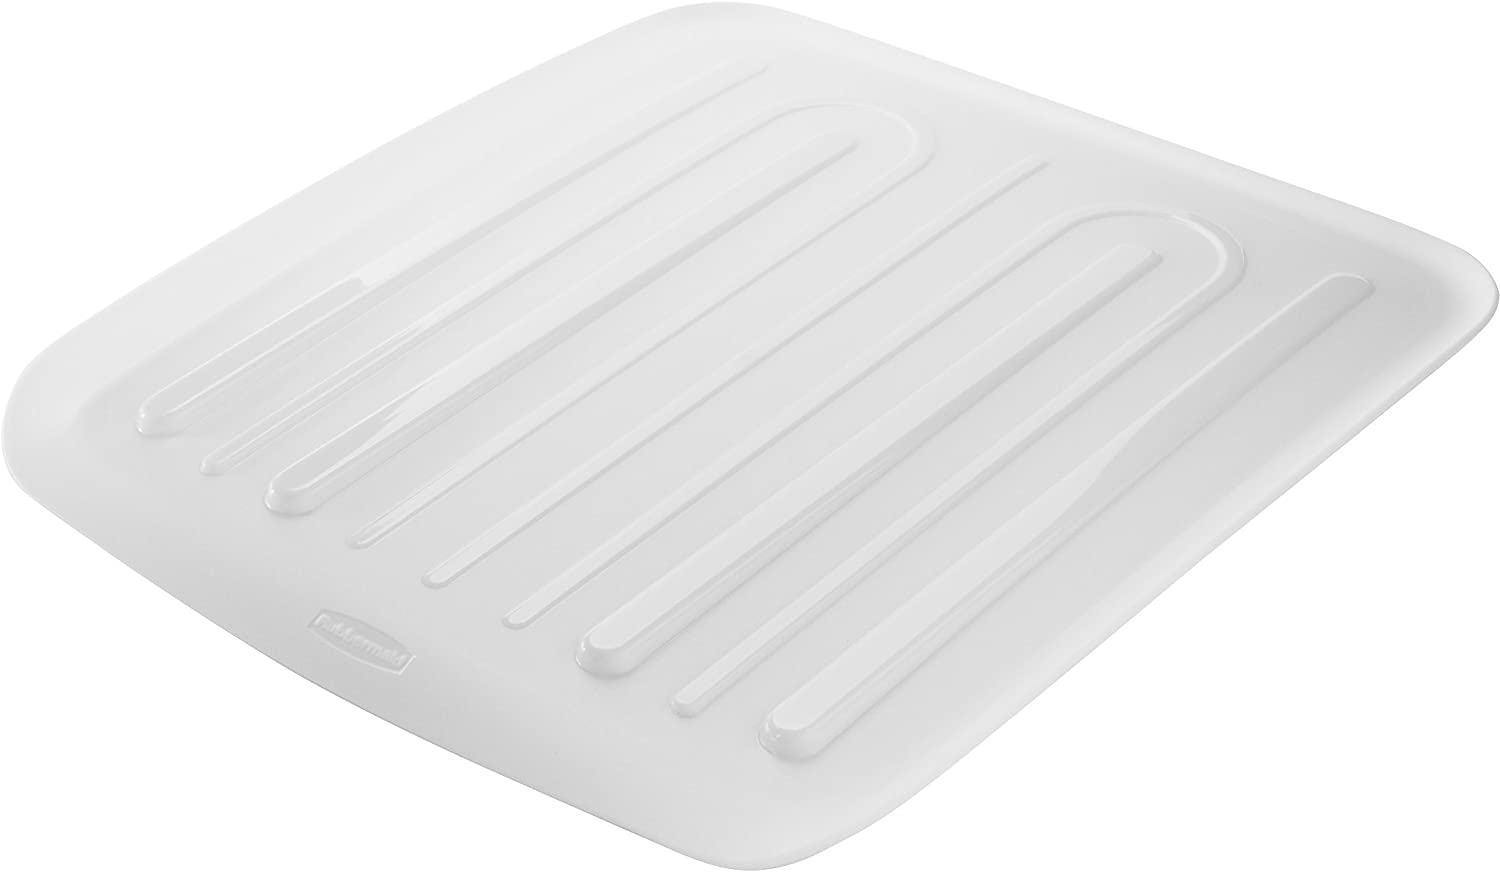 Red by Rubbermaid Rubbermaid 1180-MA-RED Antimicrobial Small Drain Board